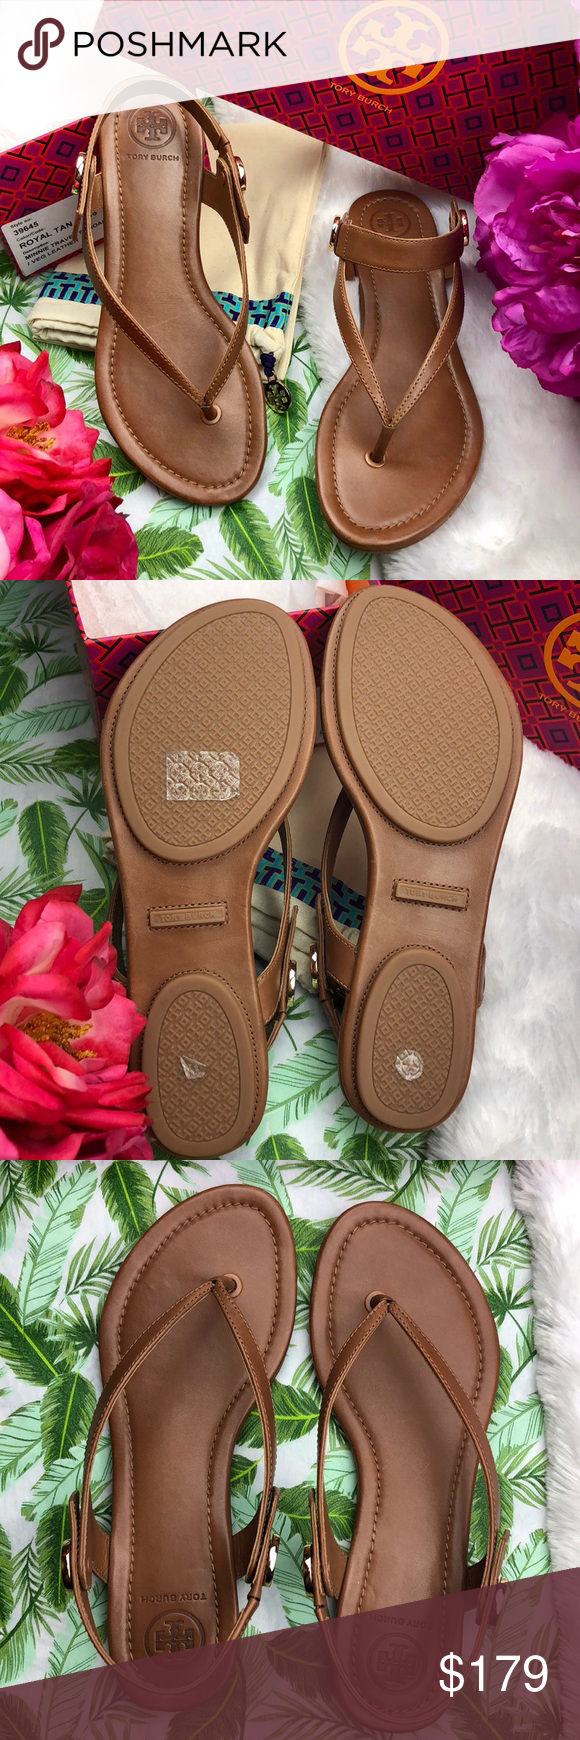 c005a427d2e5 Spotted while shopping on Poshmark   Tory Burch  Royal Tan Minnie Travel  Thong Sandals!  poshmark  fashion  shopping  style  Tory Burch  Shoes